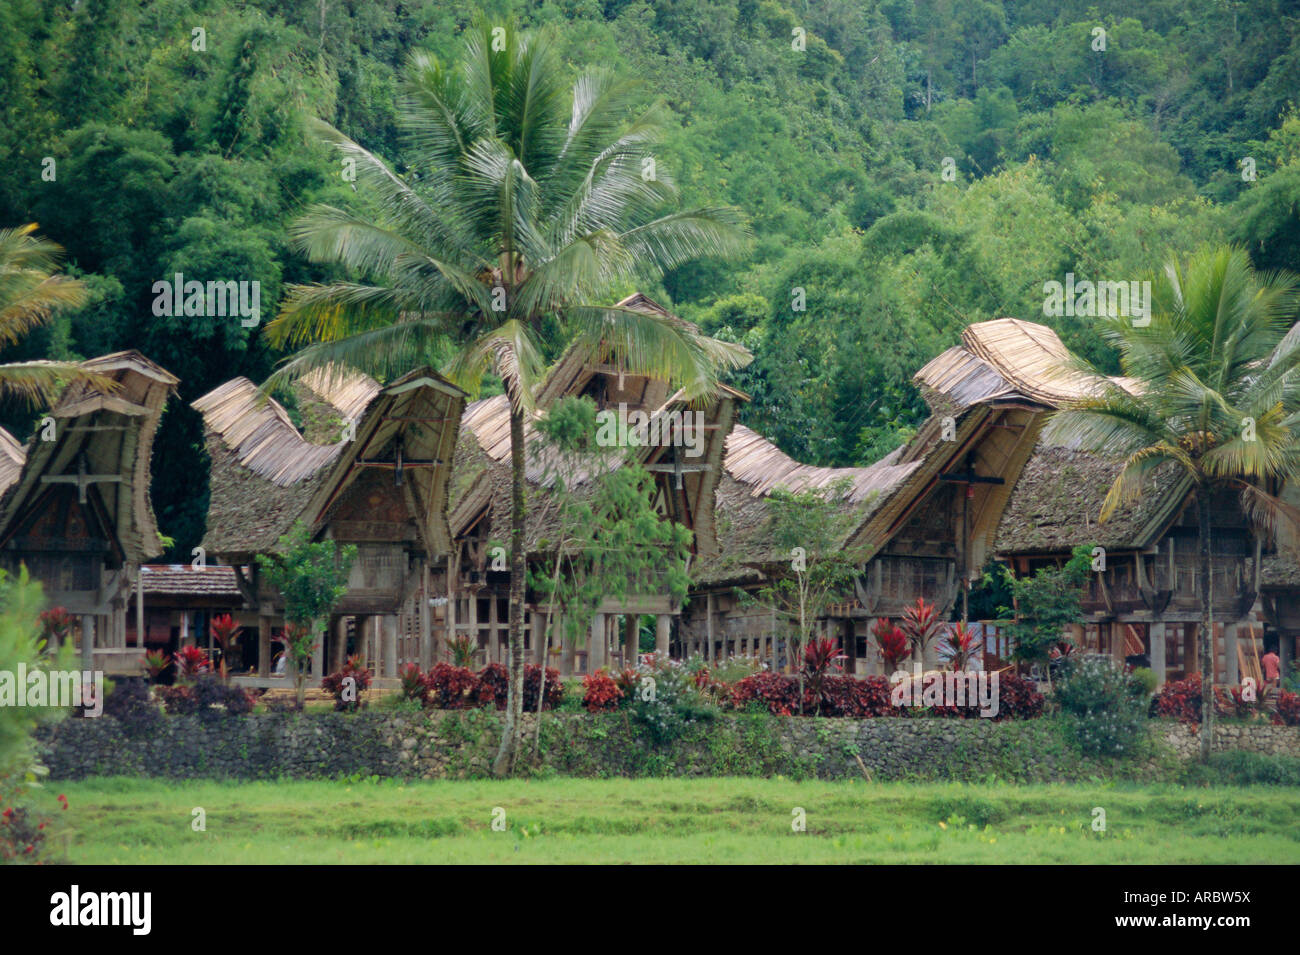 Traditional village, Kete Kesu, Torajaland, Sulawesi, Indonesia - Stock Image